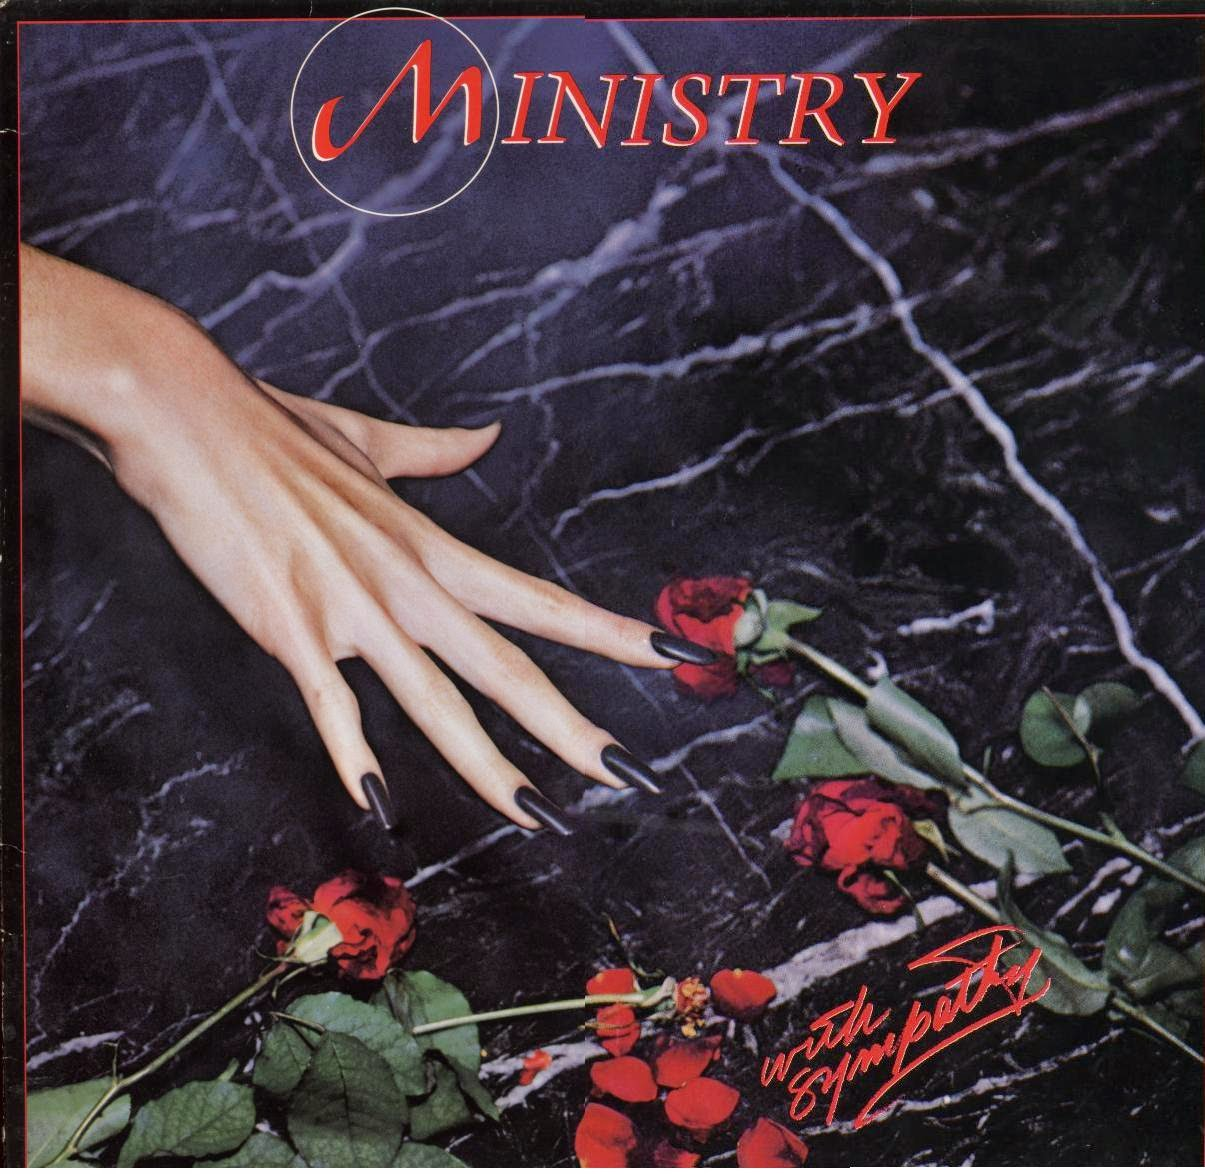 Ministry - (1983) With sympathy - front